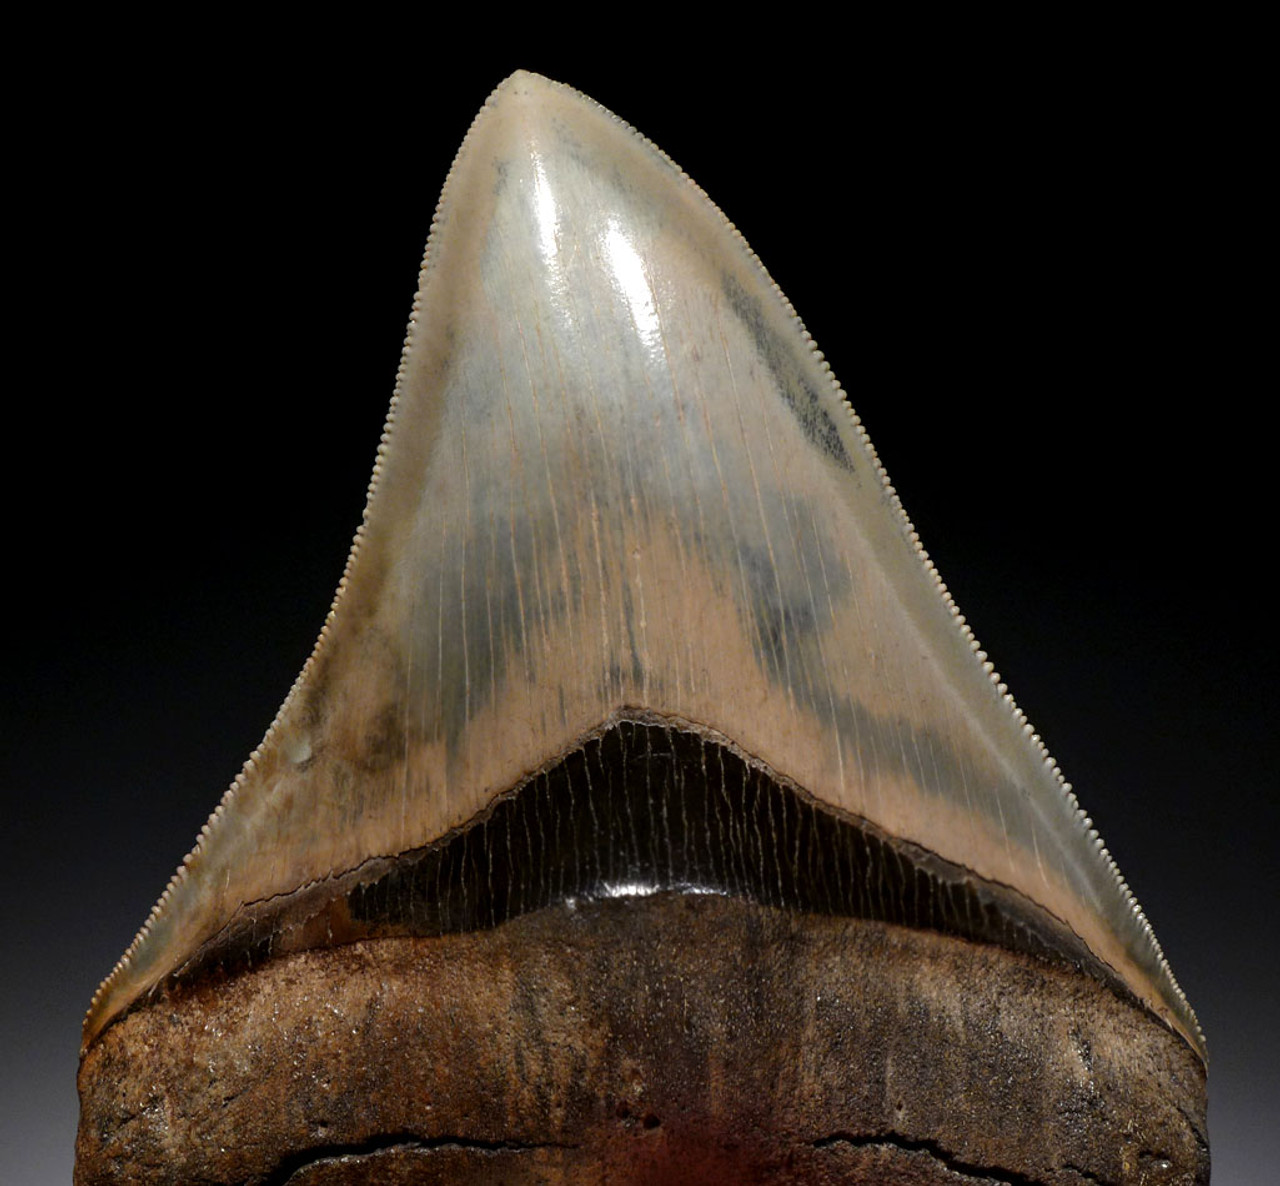 INVESTMENT GRADE MEGALODON 4.6 INCH FOSSIL SHARK TOOTH WITH AMAZING COLOR *SH6-413